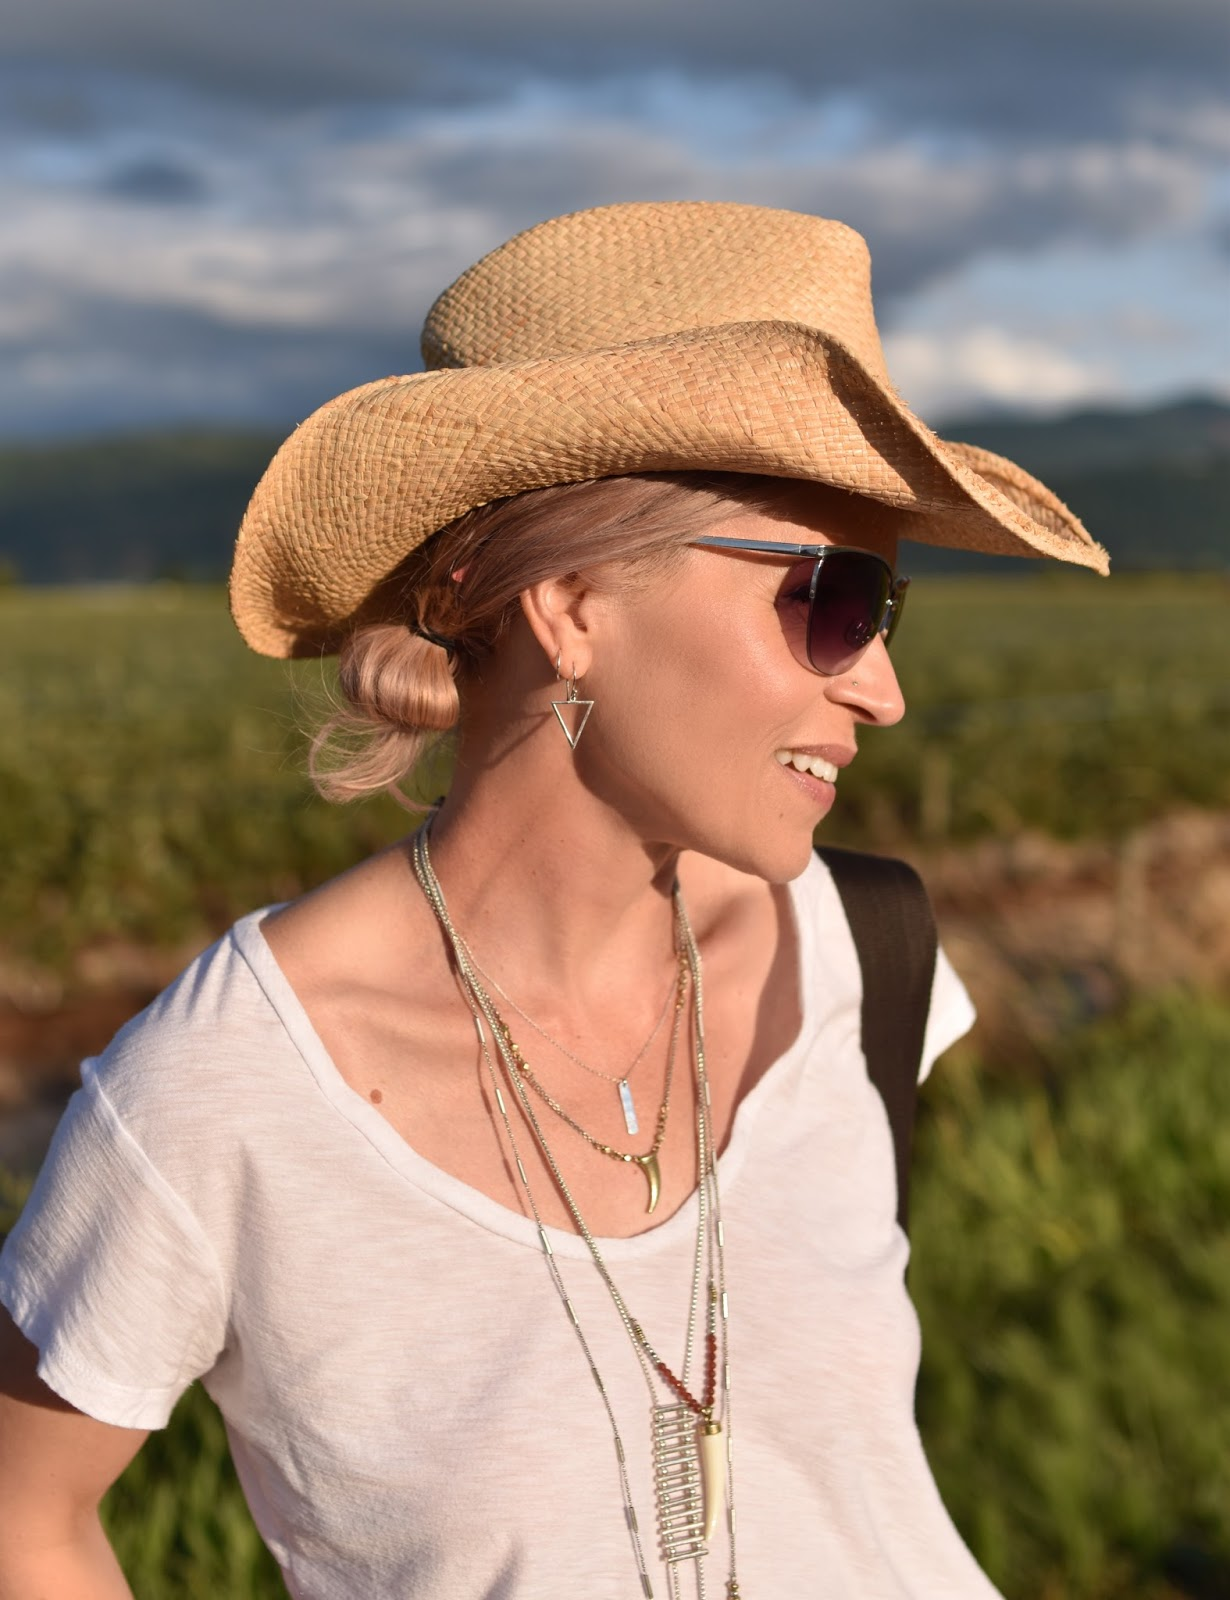 Monika Faulkner outfit inspiration - slouchy white tee, wire-frame sunglasses, cowboy hat, layered Lucky Brand necklaces